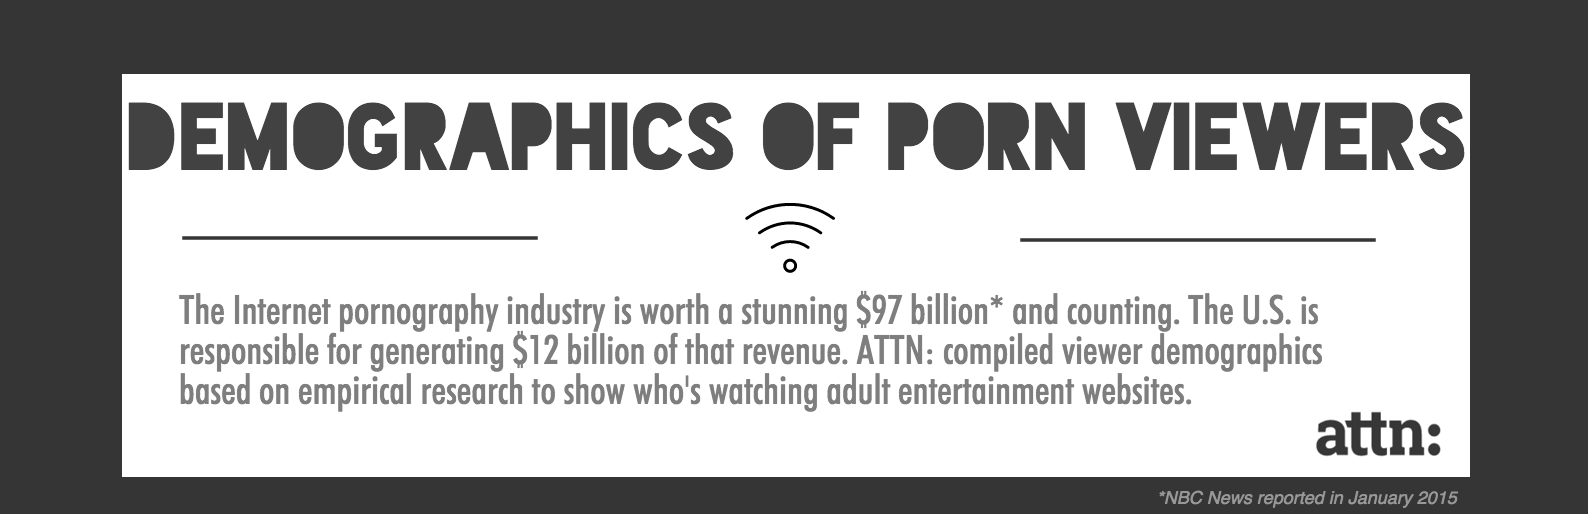 Demographics of Porn Viewers